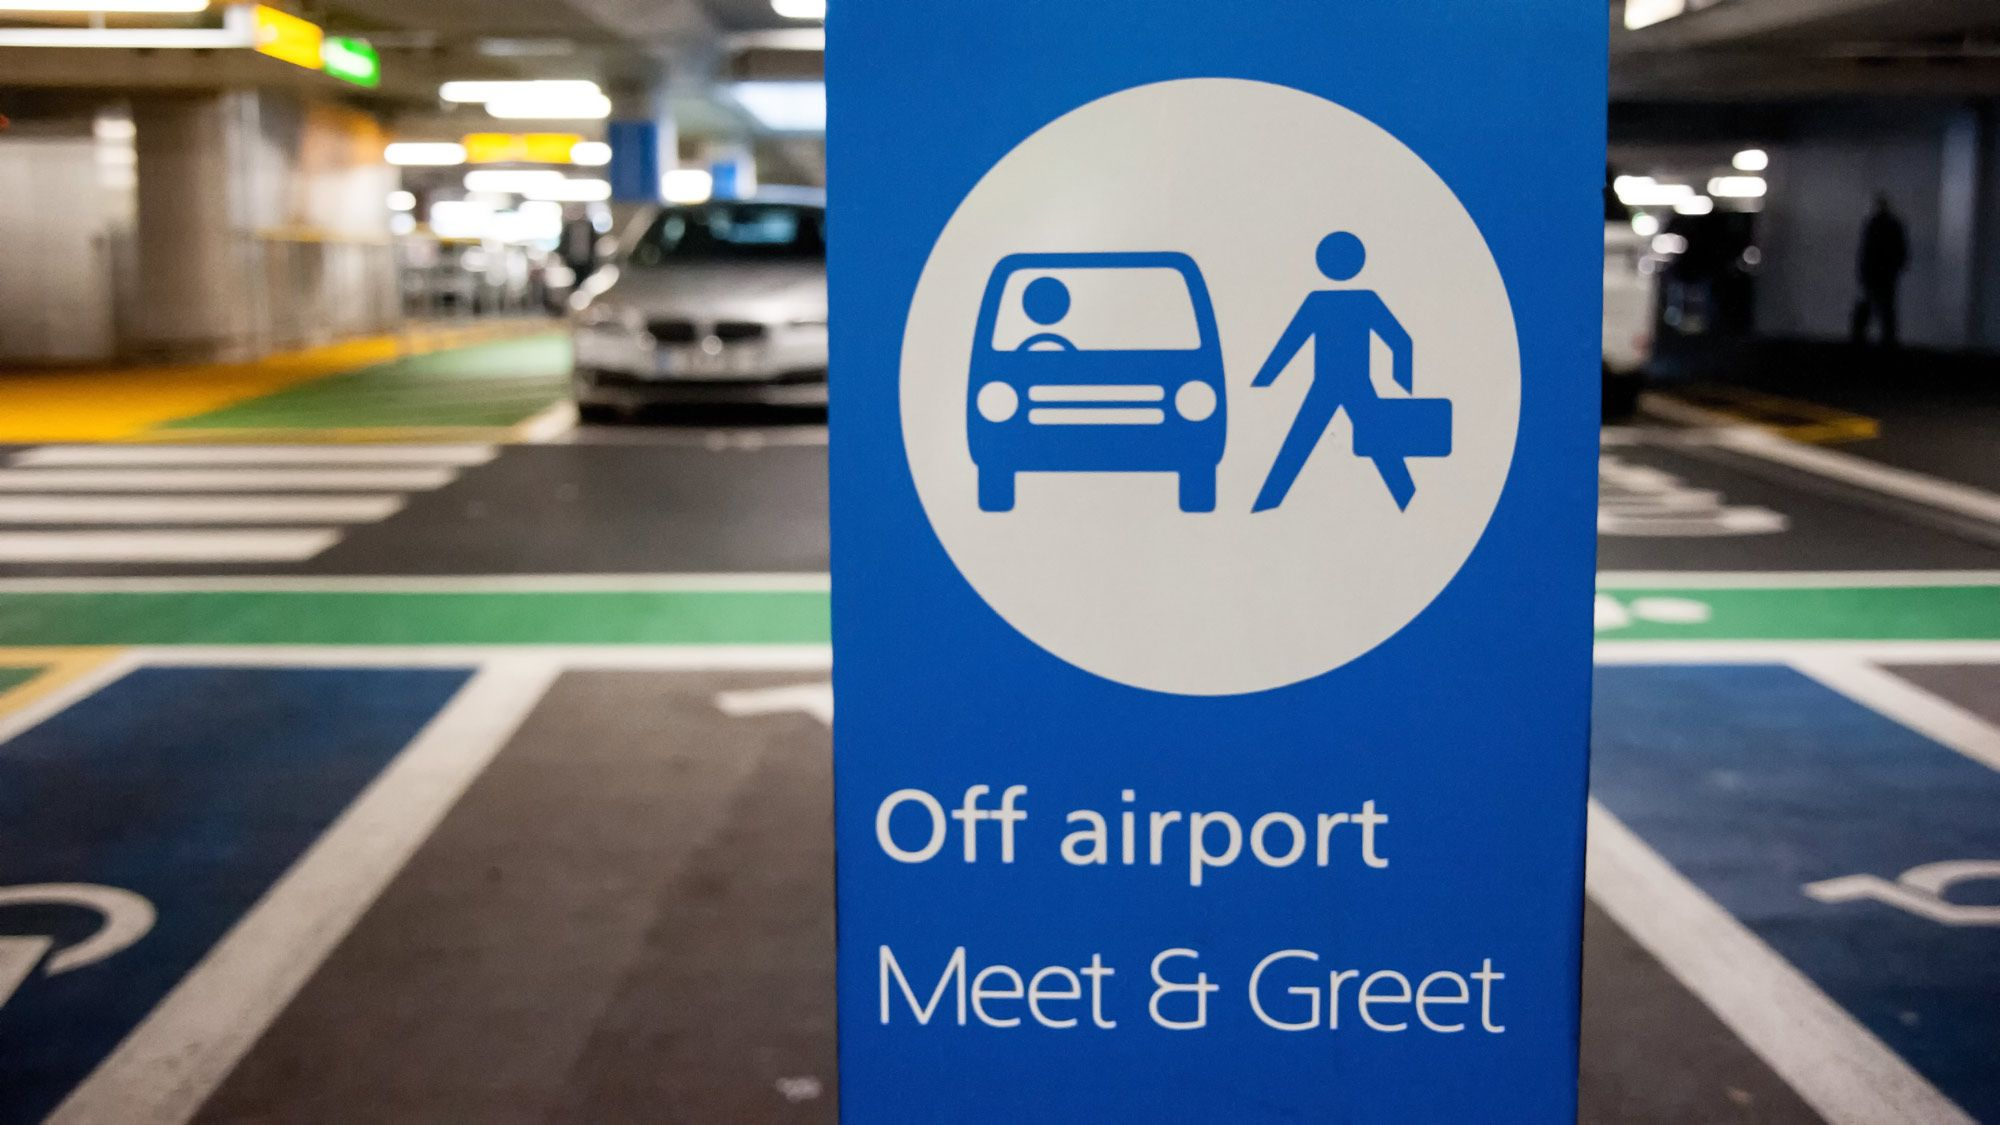 Reliable Airport Parking At Affordable Rates Is The Best Way To